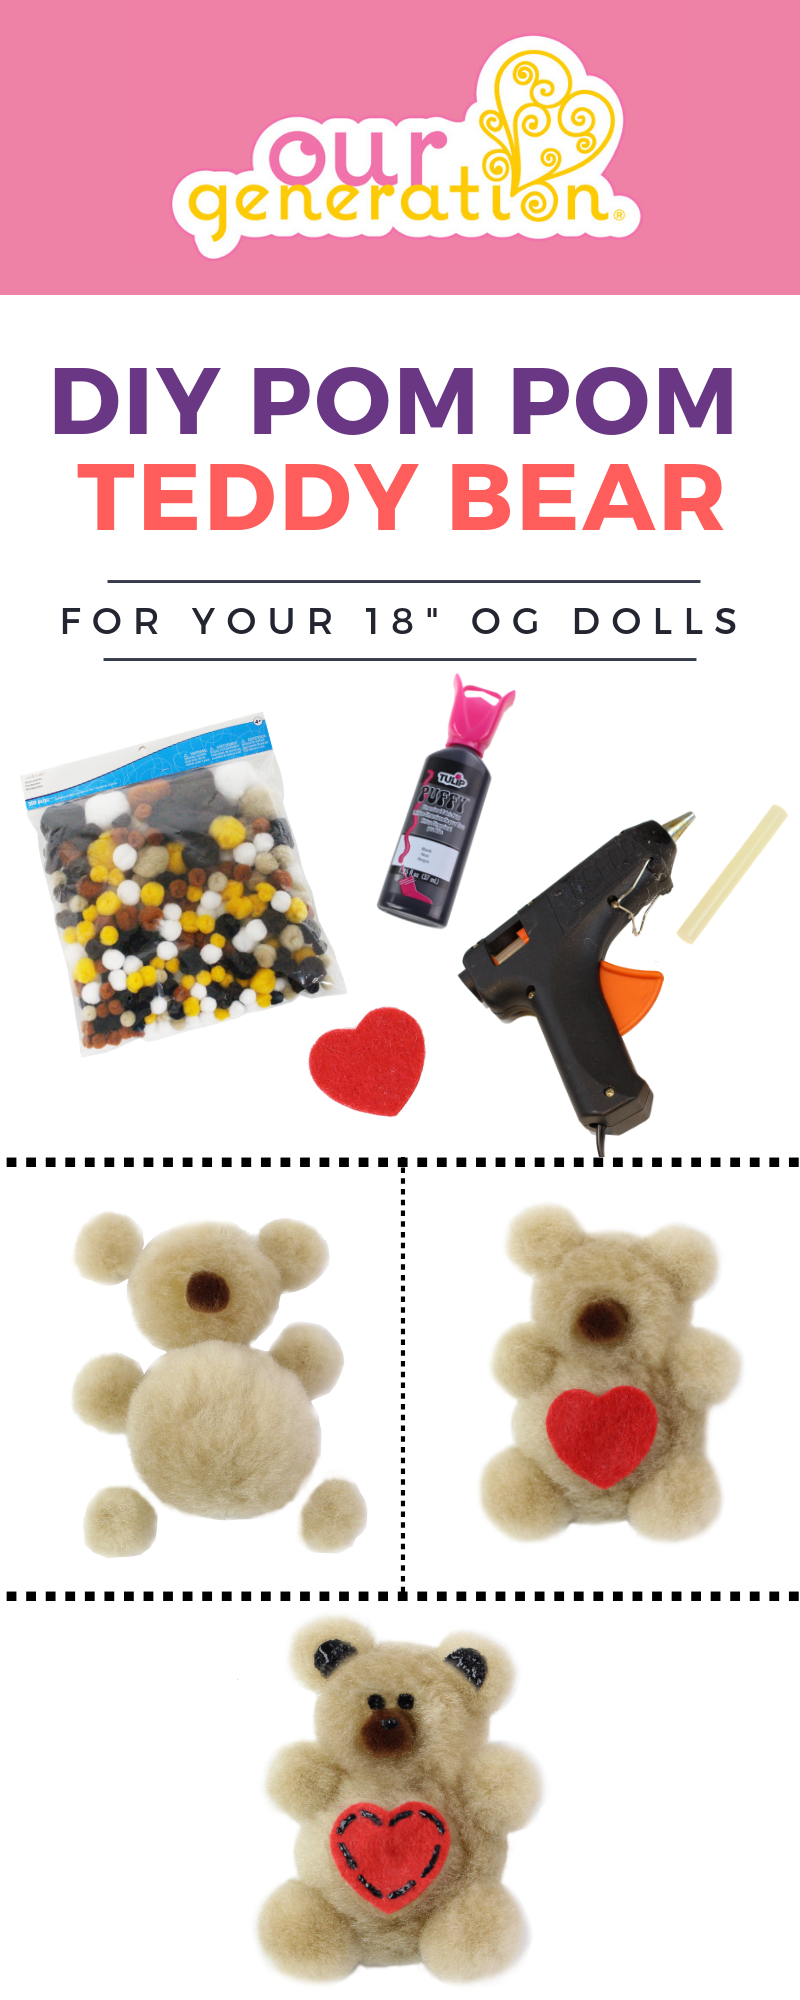 Infographic for making DIY Pom Pom Teddy Bears